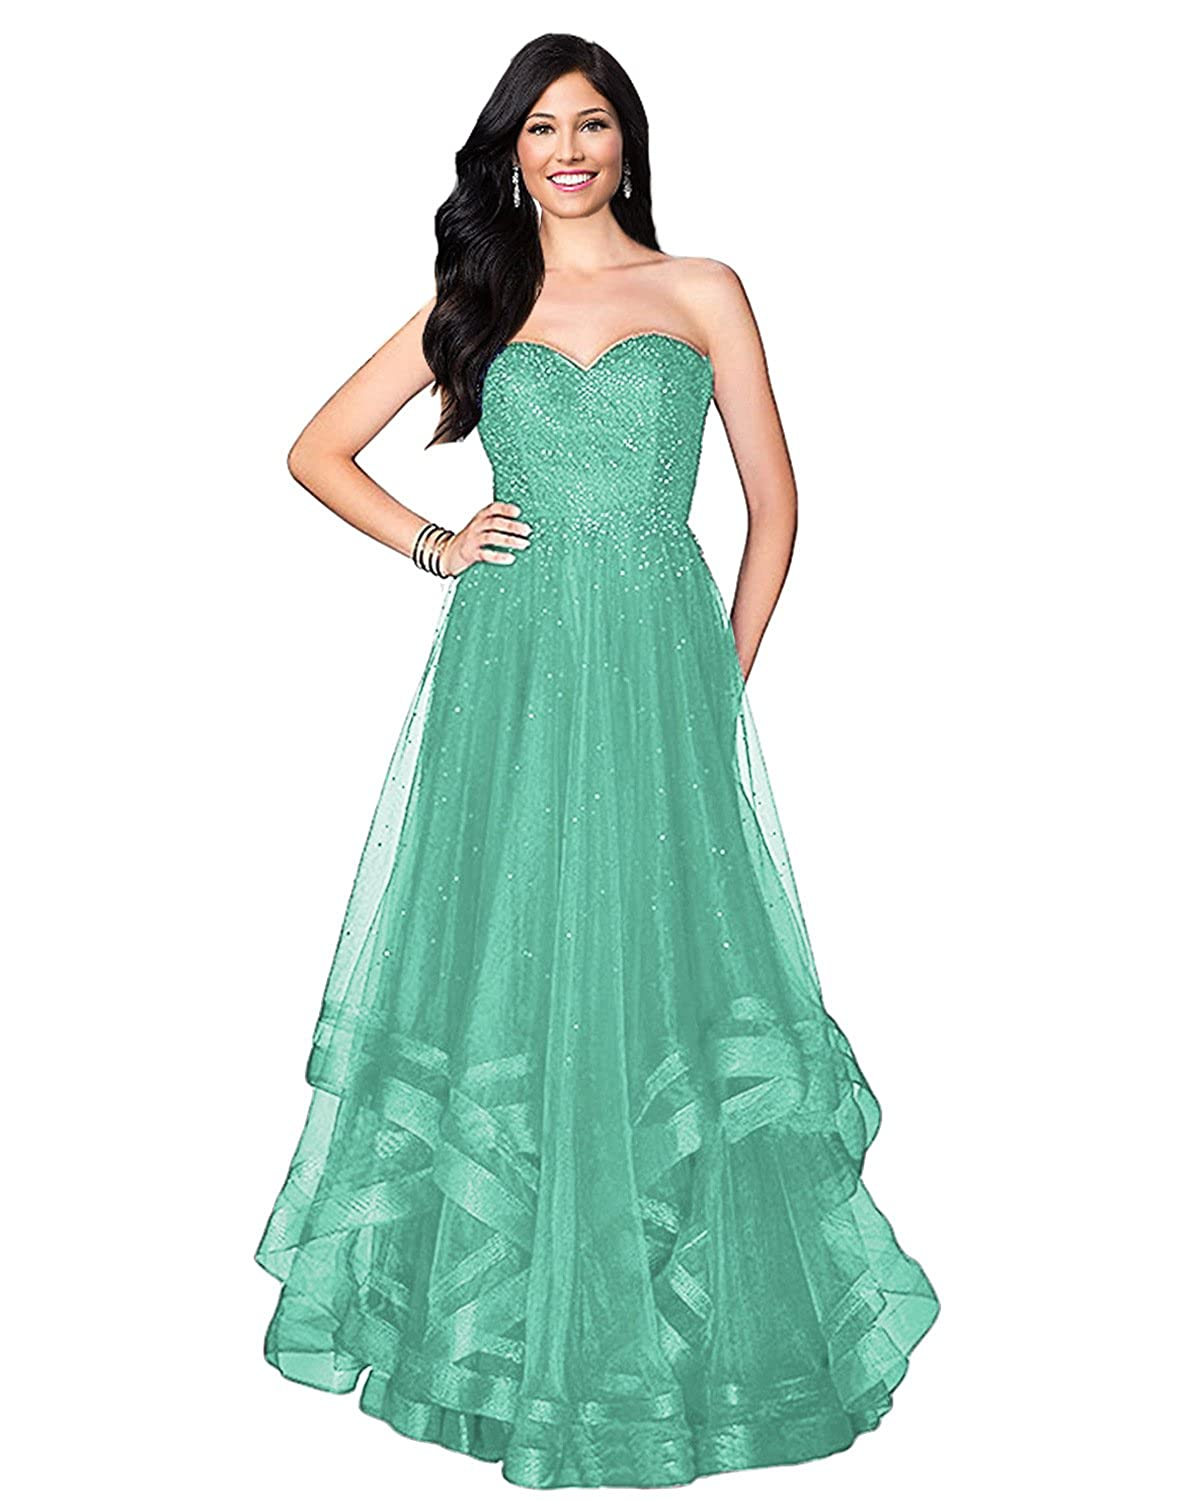 Lily Wedding Womens Beaded Tulle Prom Dresses 2018 Long Sweetheart Formal Evening Party Ball Gowns with Ruffles GD06 at Amazon Womens Clothing store: